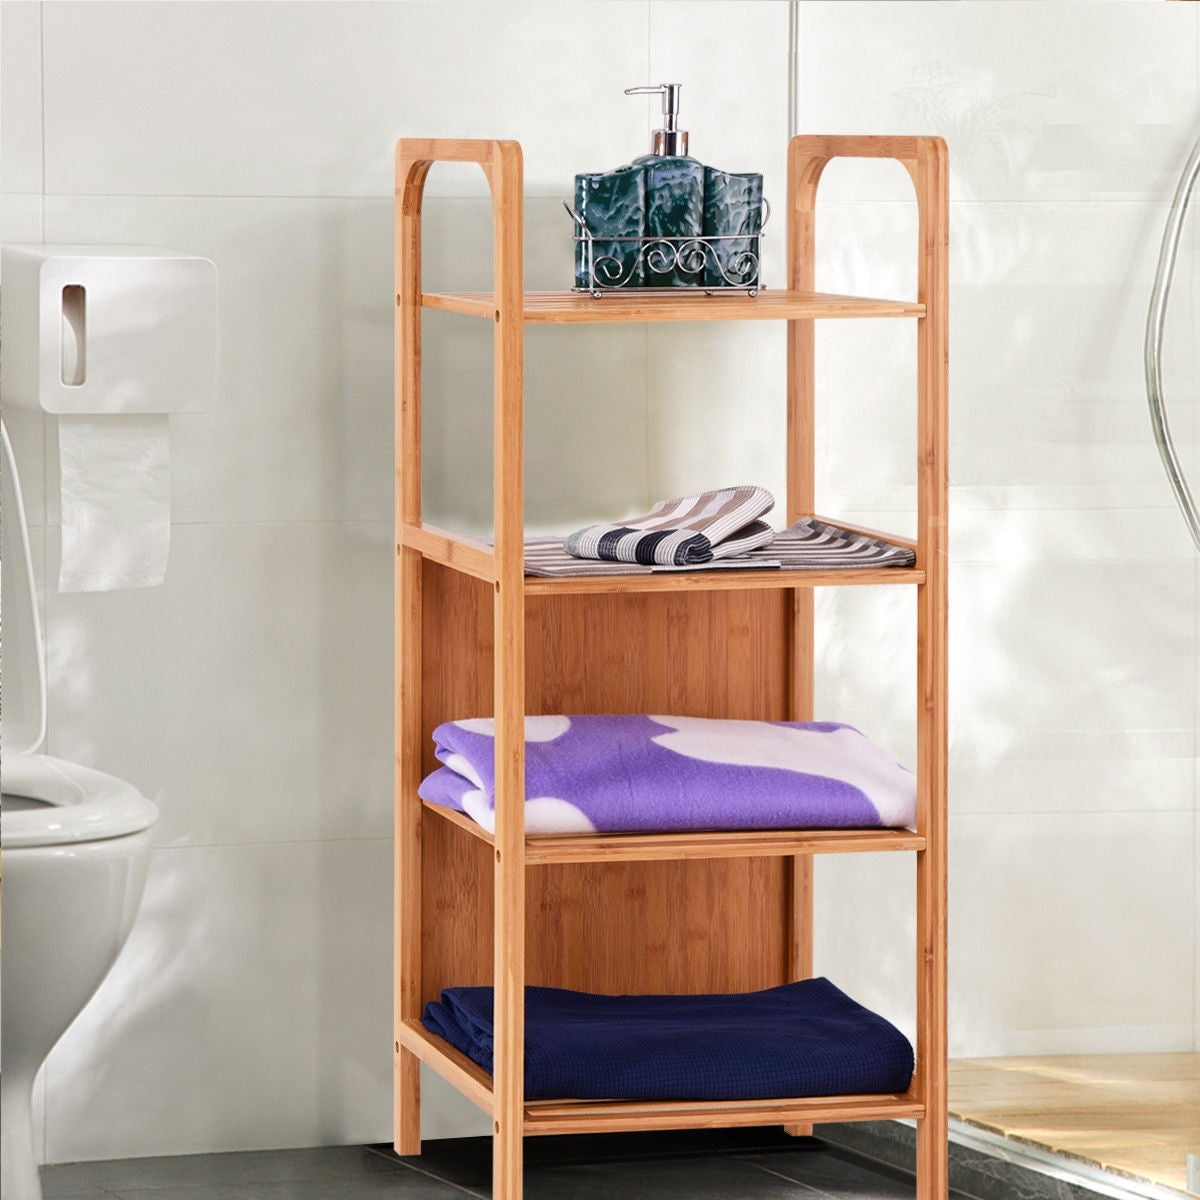 Shop Costway 4 Tier Bamboo Bathroom Shelf Storage Unit Tower Rack ...